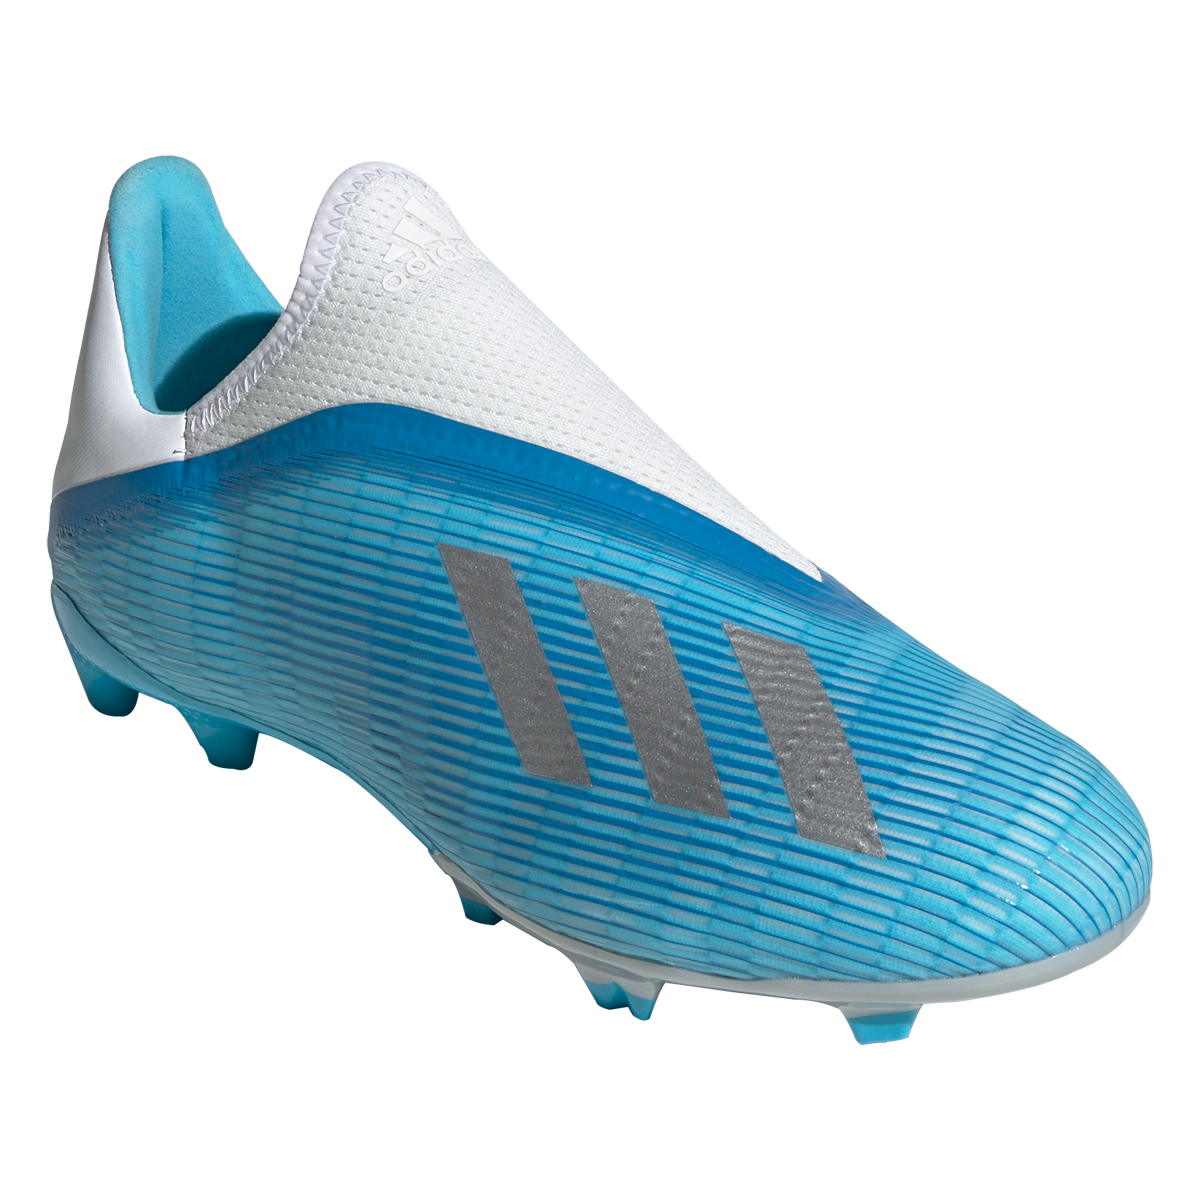 adidas X 19.3 Laceless FG Soccer Cleat Cyan/Black/Pink-10.5 ...